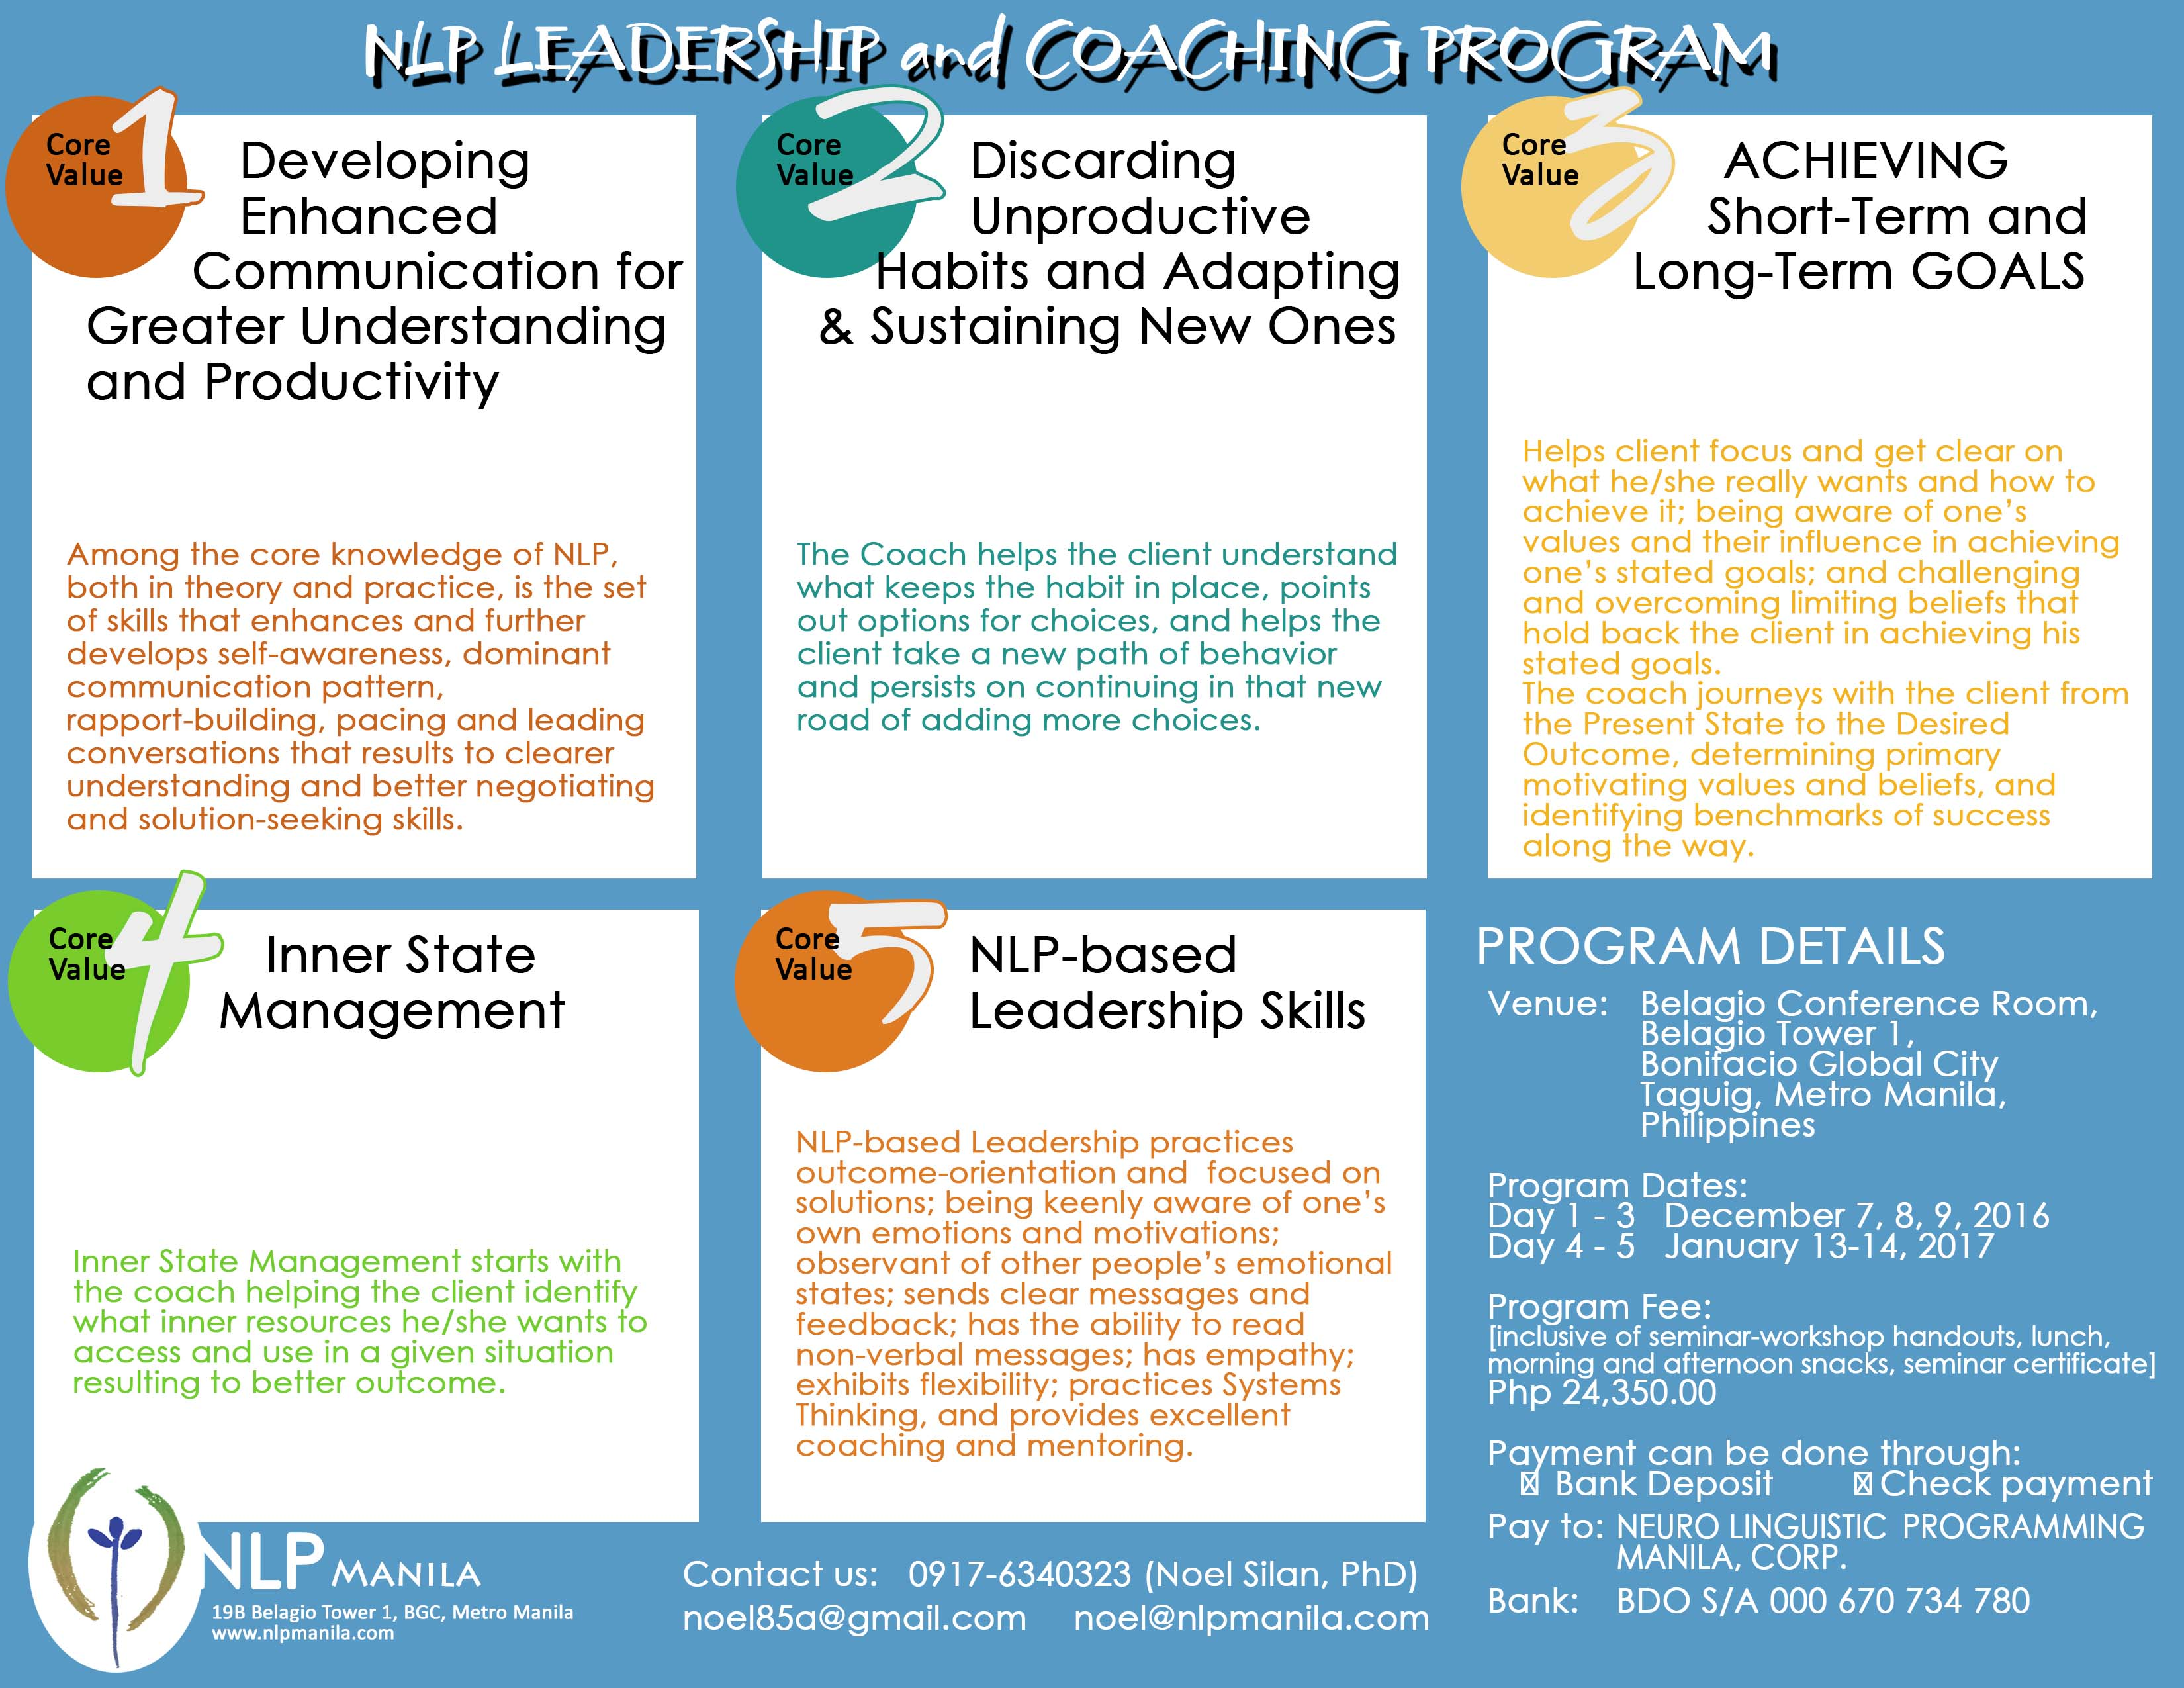 NLP LEADERSHIP and COACHING (5-Day Intensive Program)